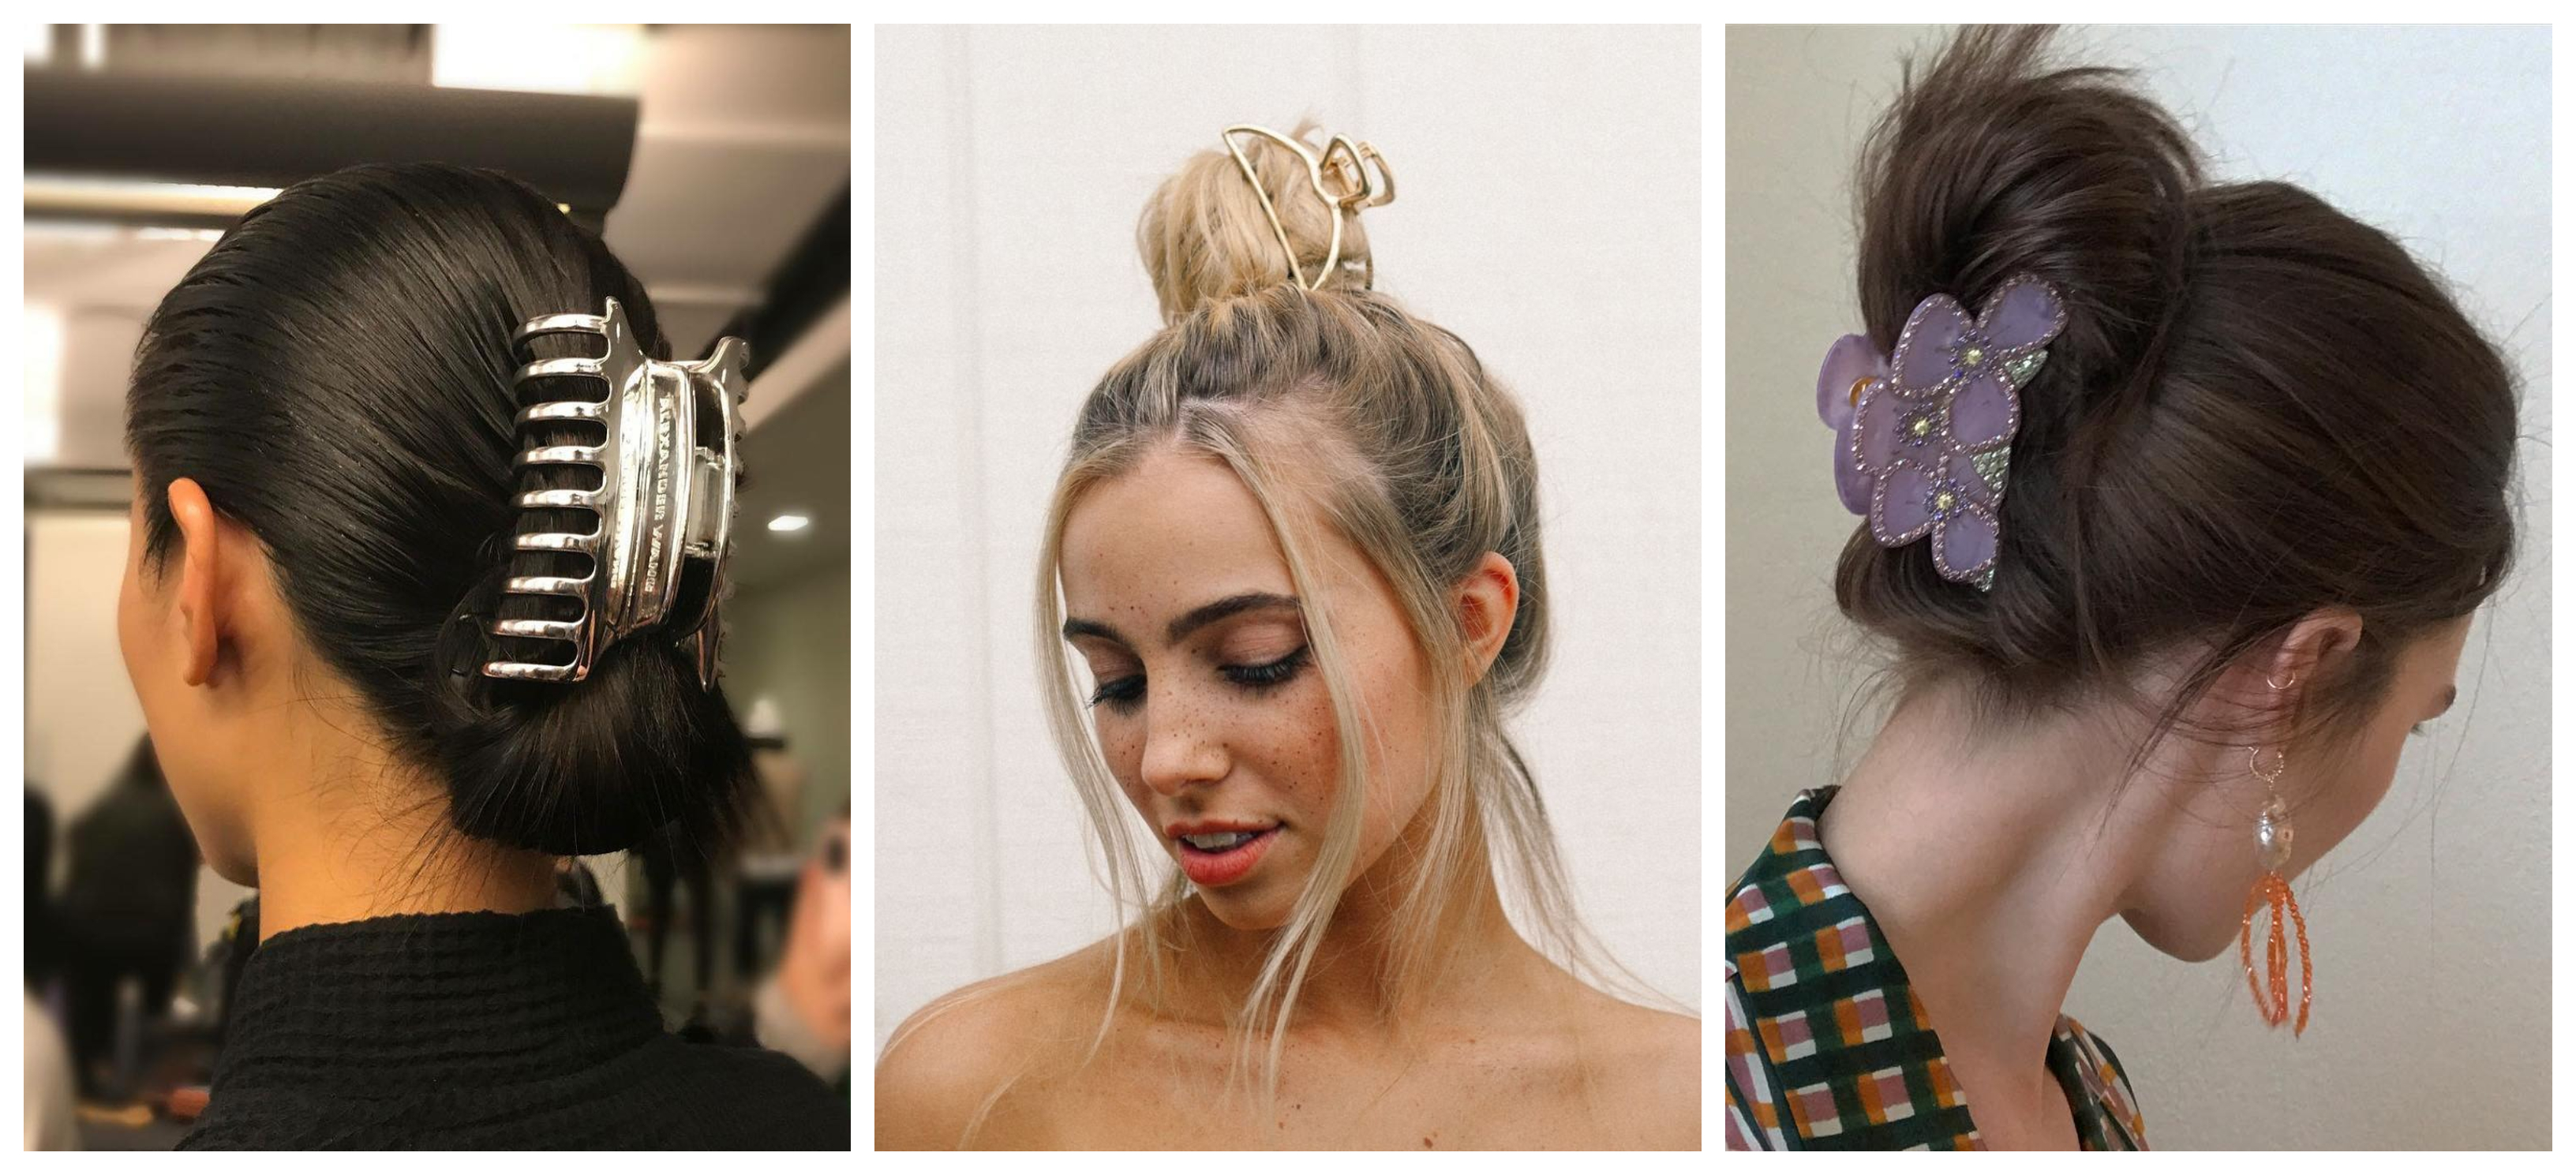 Claw Clips Trend